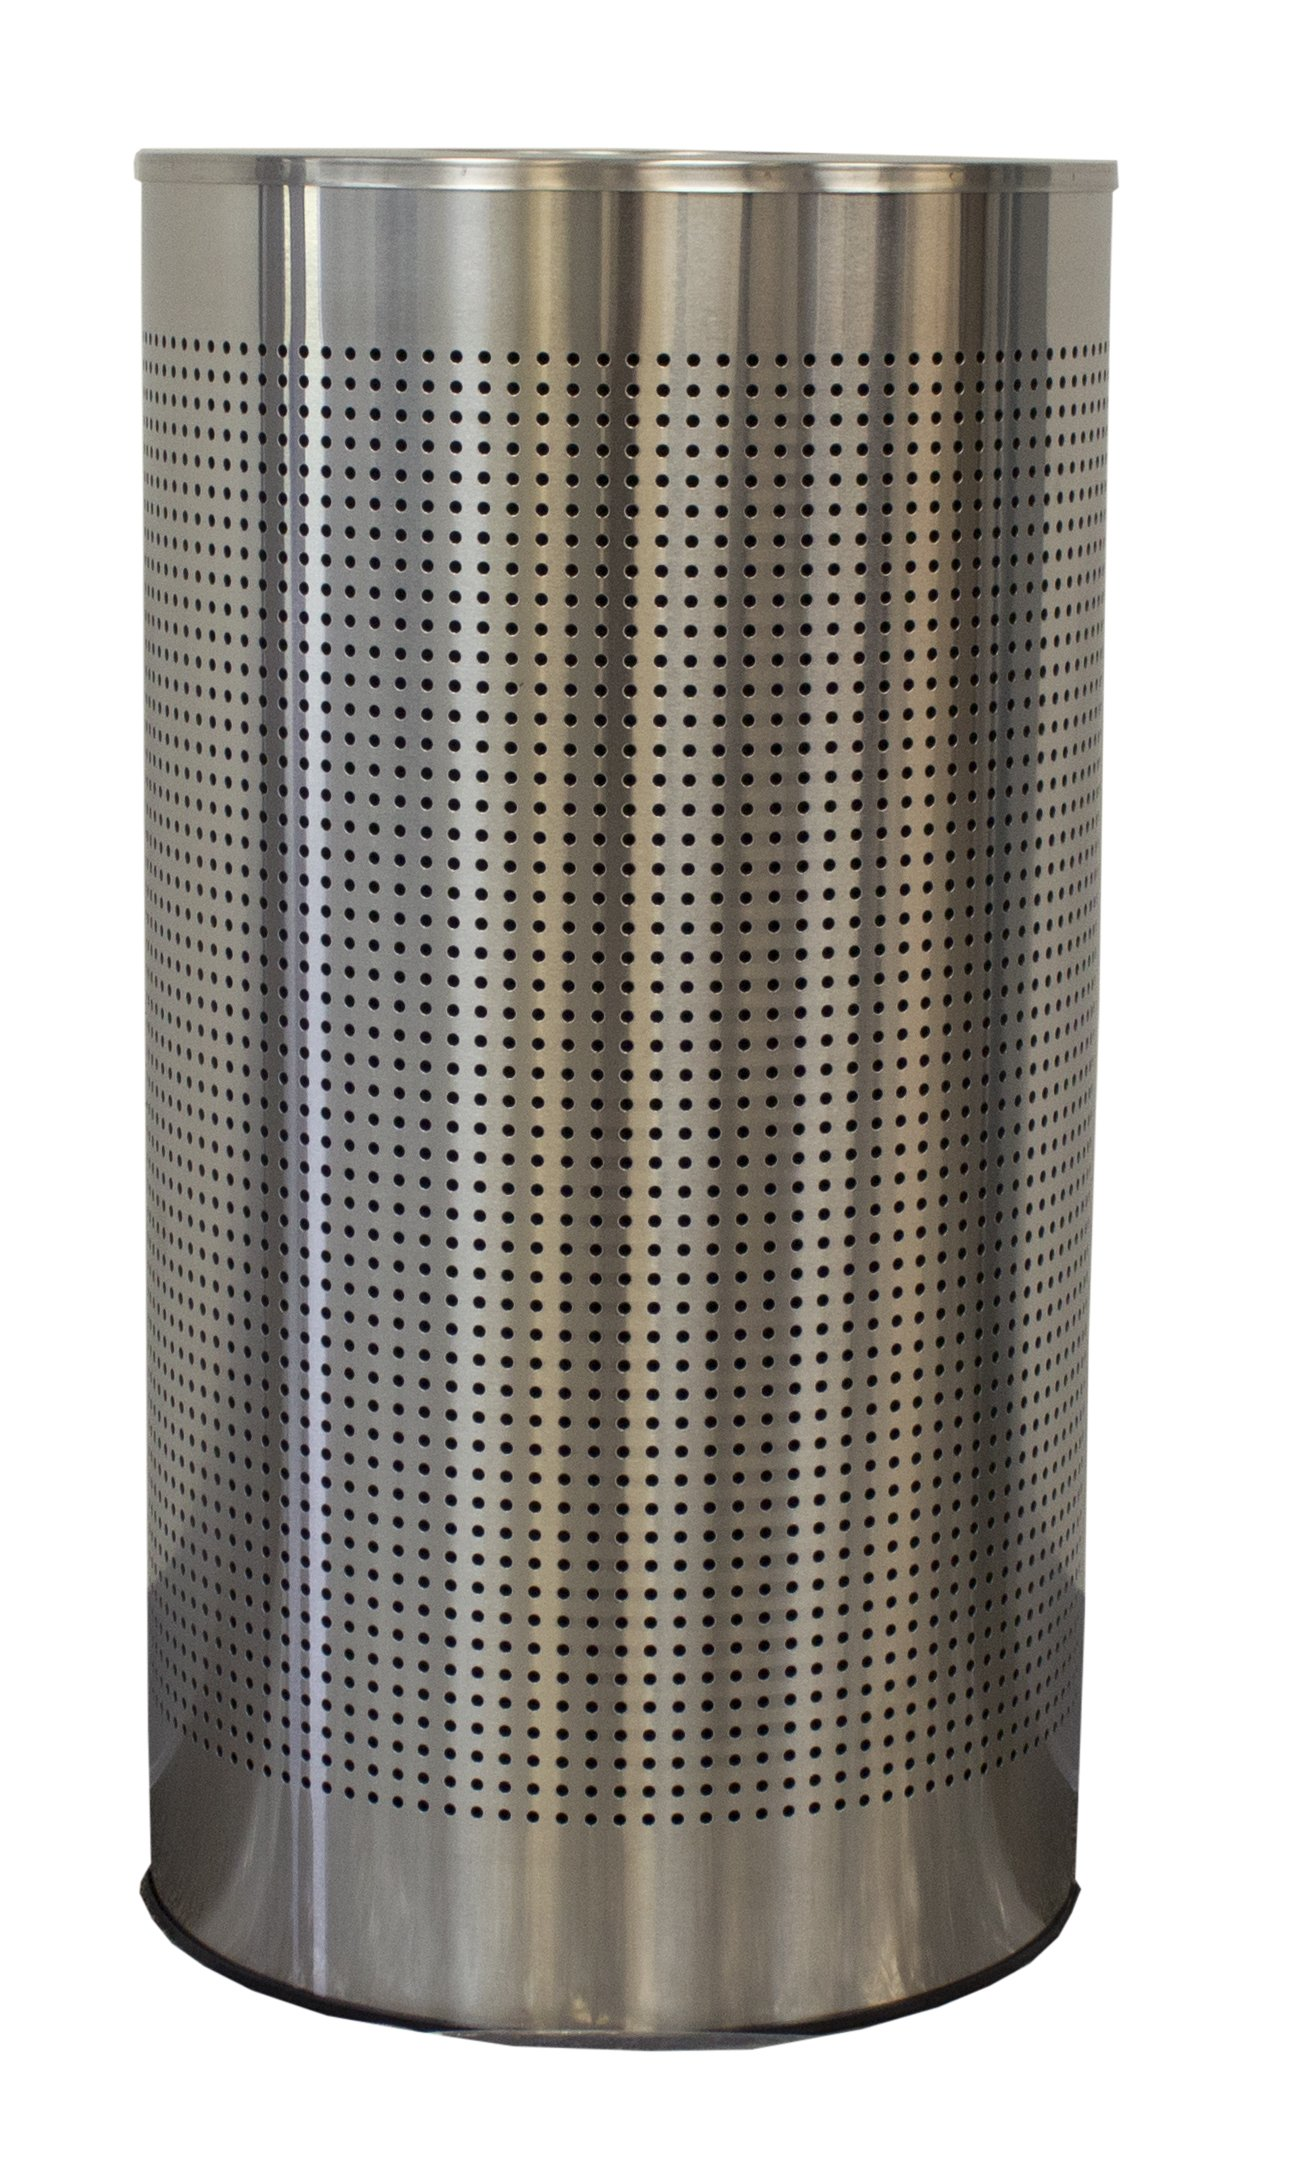 Witt Industries CLHR12-SS Celestial Half Round, 32'' Height, 9'' width, 12 gal Capacity, Brushed Stainless Steel